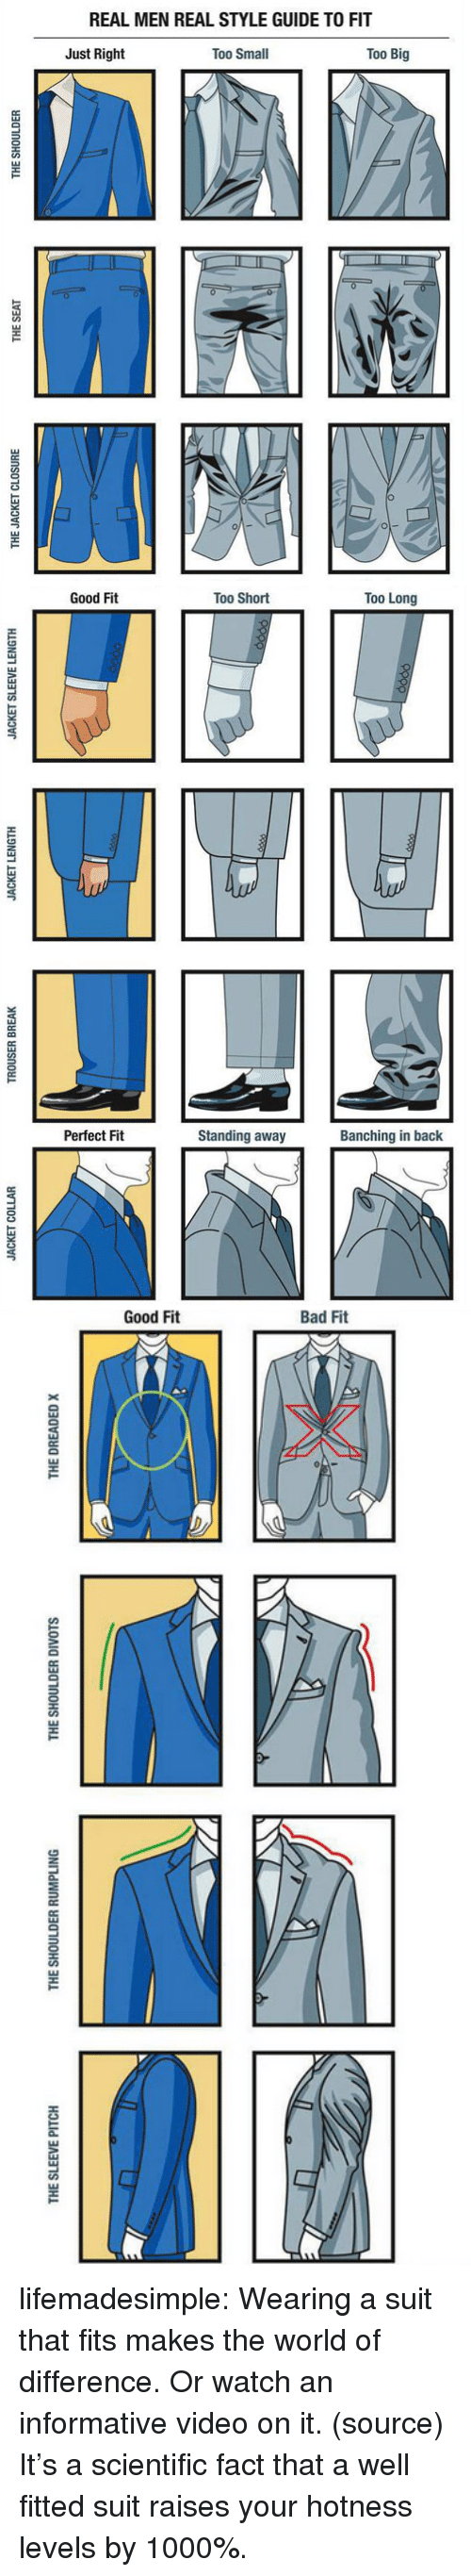 hotness: REAL MEN REAL STYLE GUIDE TO FIT  Just Right  Too Small  Too Big  0  1   Good Fit  Too Short  Too Long  Perfect Fit  Standing away  Banching in back   THE SLEEVE PITCH  THE SHOULDER RUMPLING  THE SHOULDER DIVOTS  THE DREADED x lifemadesimple:  Wearing a suit that fits makes the world of difference. Or watch an informative video on it. (source)  It's a scientific fact that a well fitted suit raises your hotness levels by 1000%.